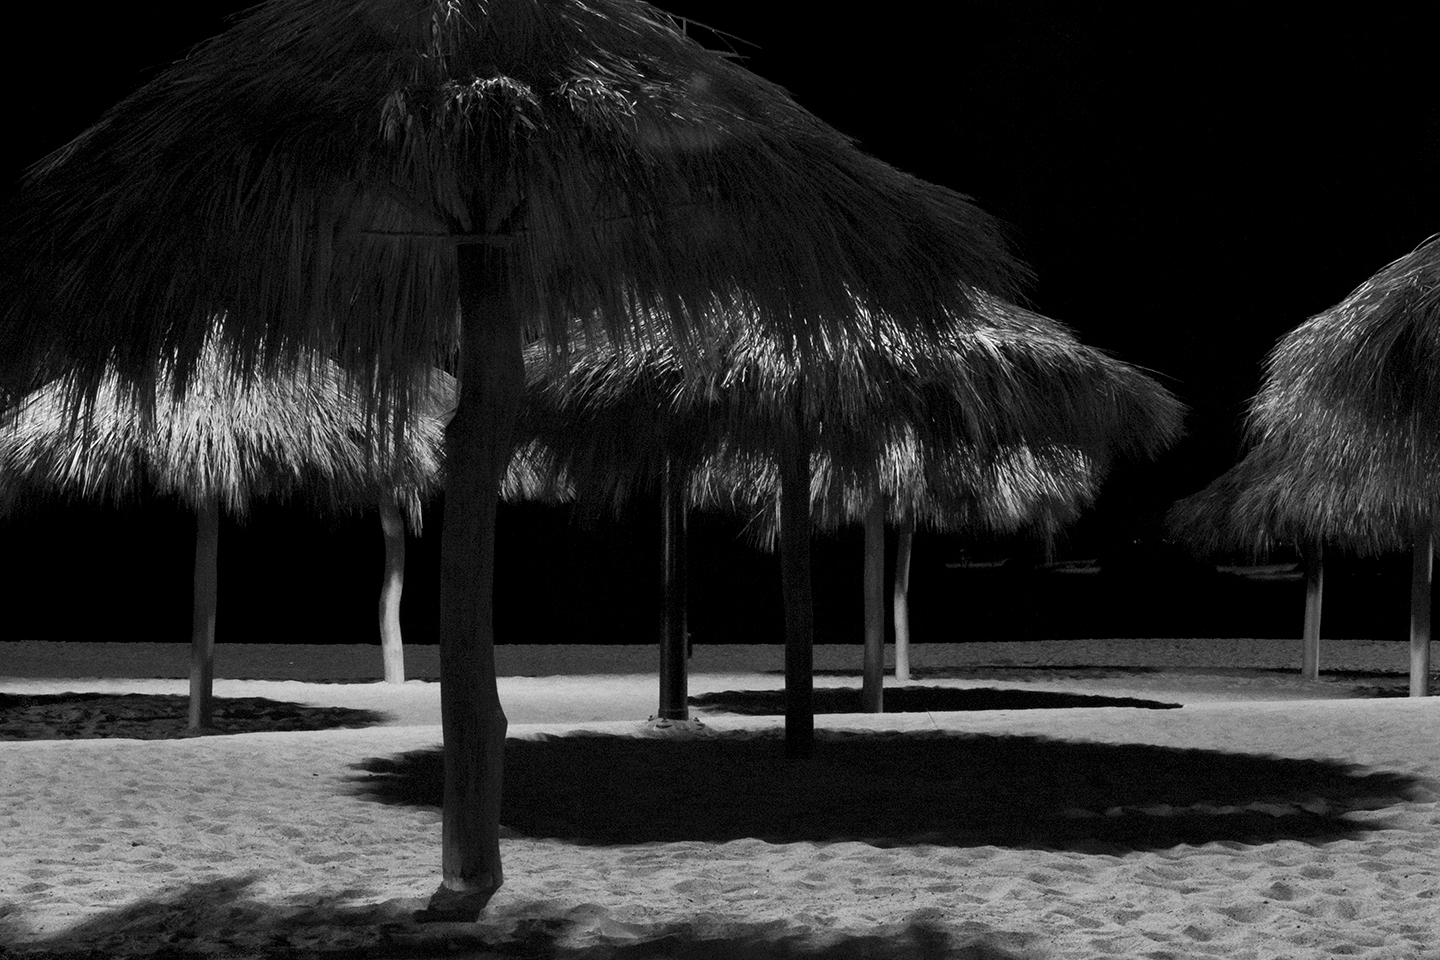 Night Palapas #2